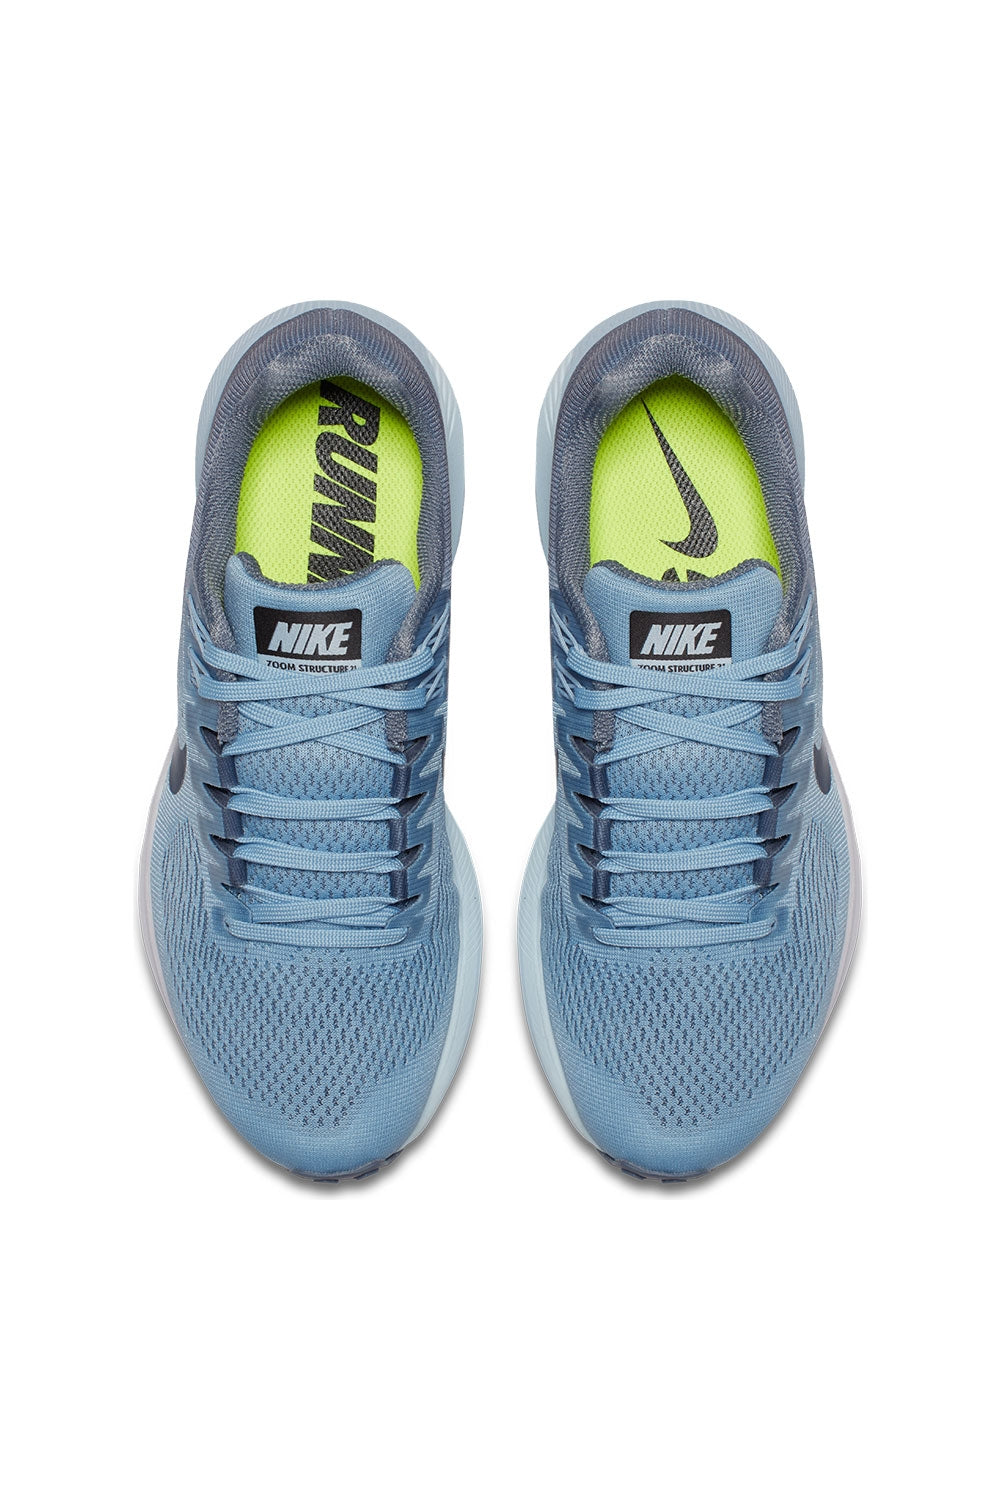 best service b7fcd e7761 ... reduced womens air zoom structure 21 d wide. nike a105d 06c1c